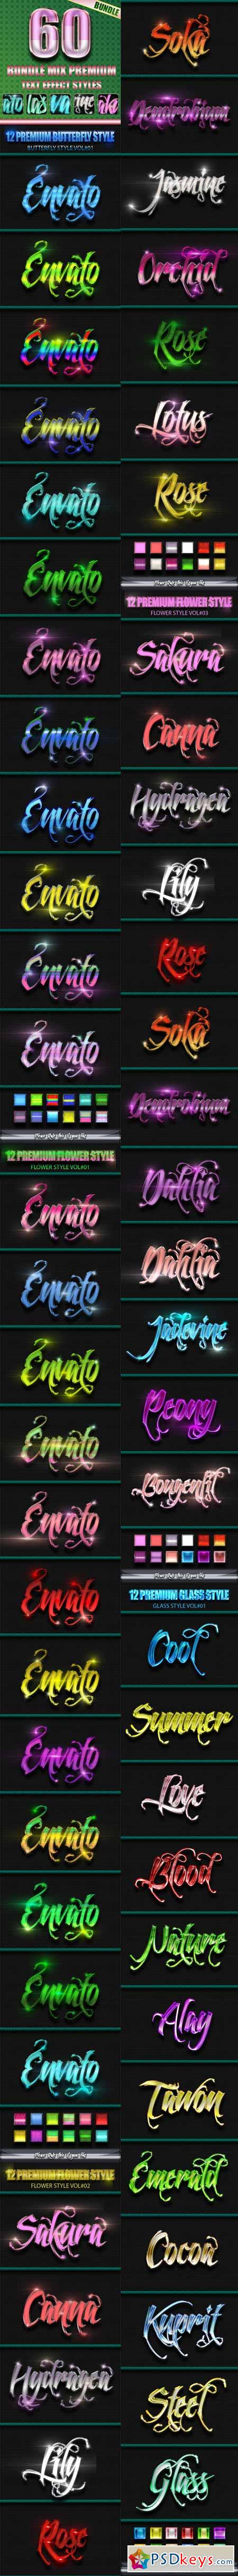 60 Bundle Mix Premium Text Effect Styles 11883043